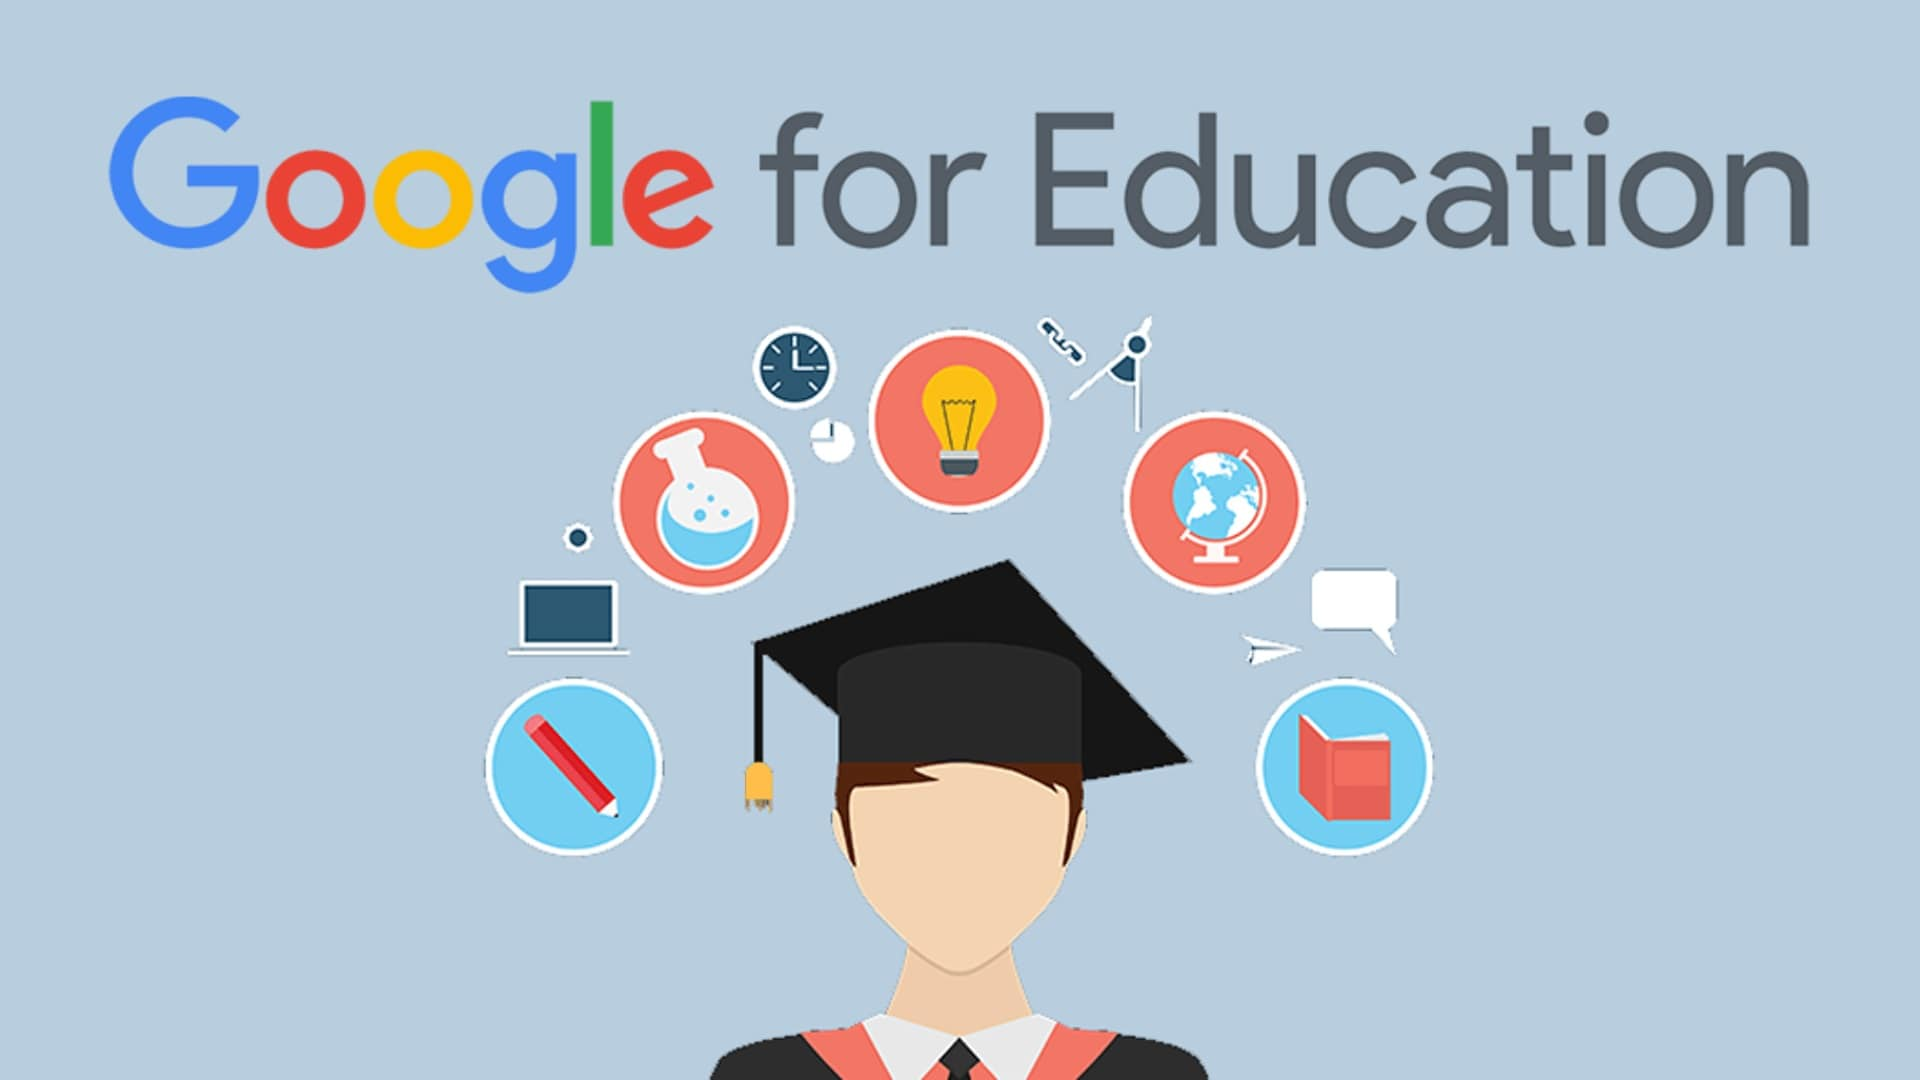 g suite educacion google for education min